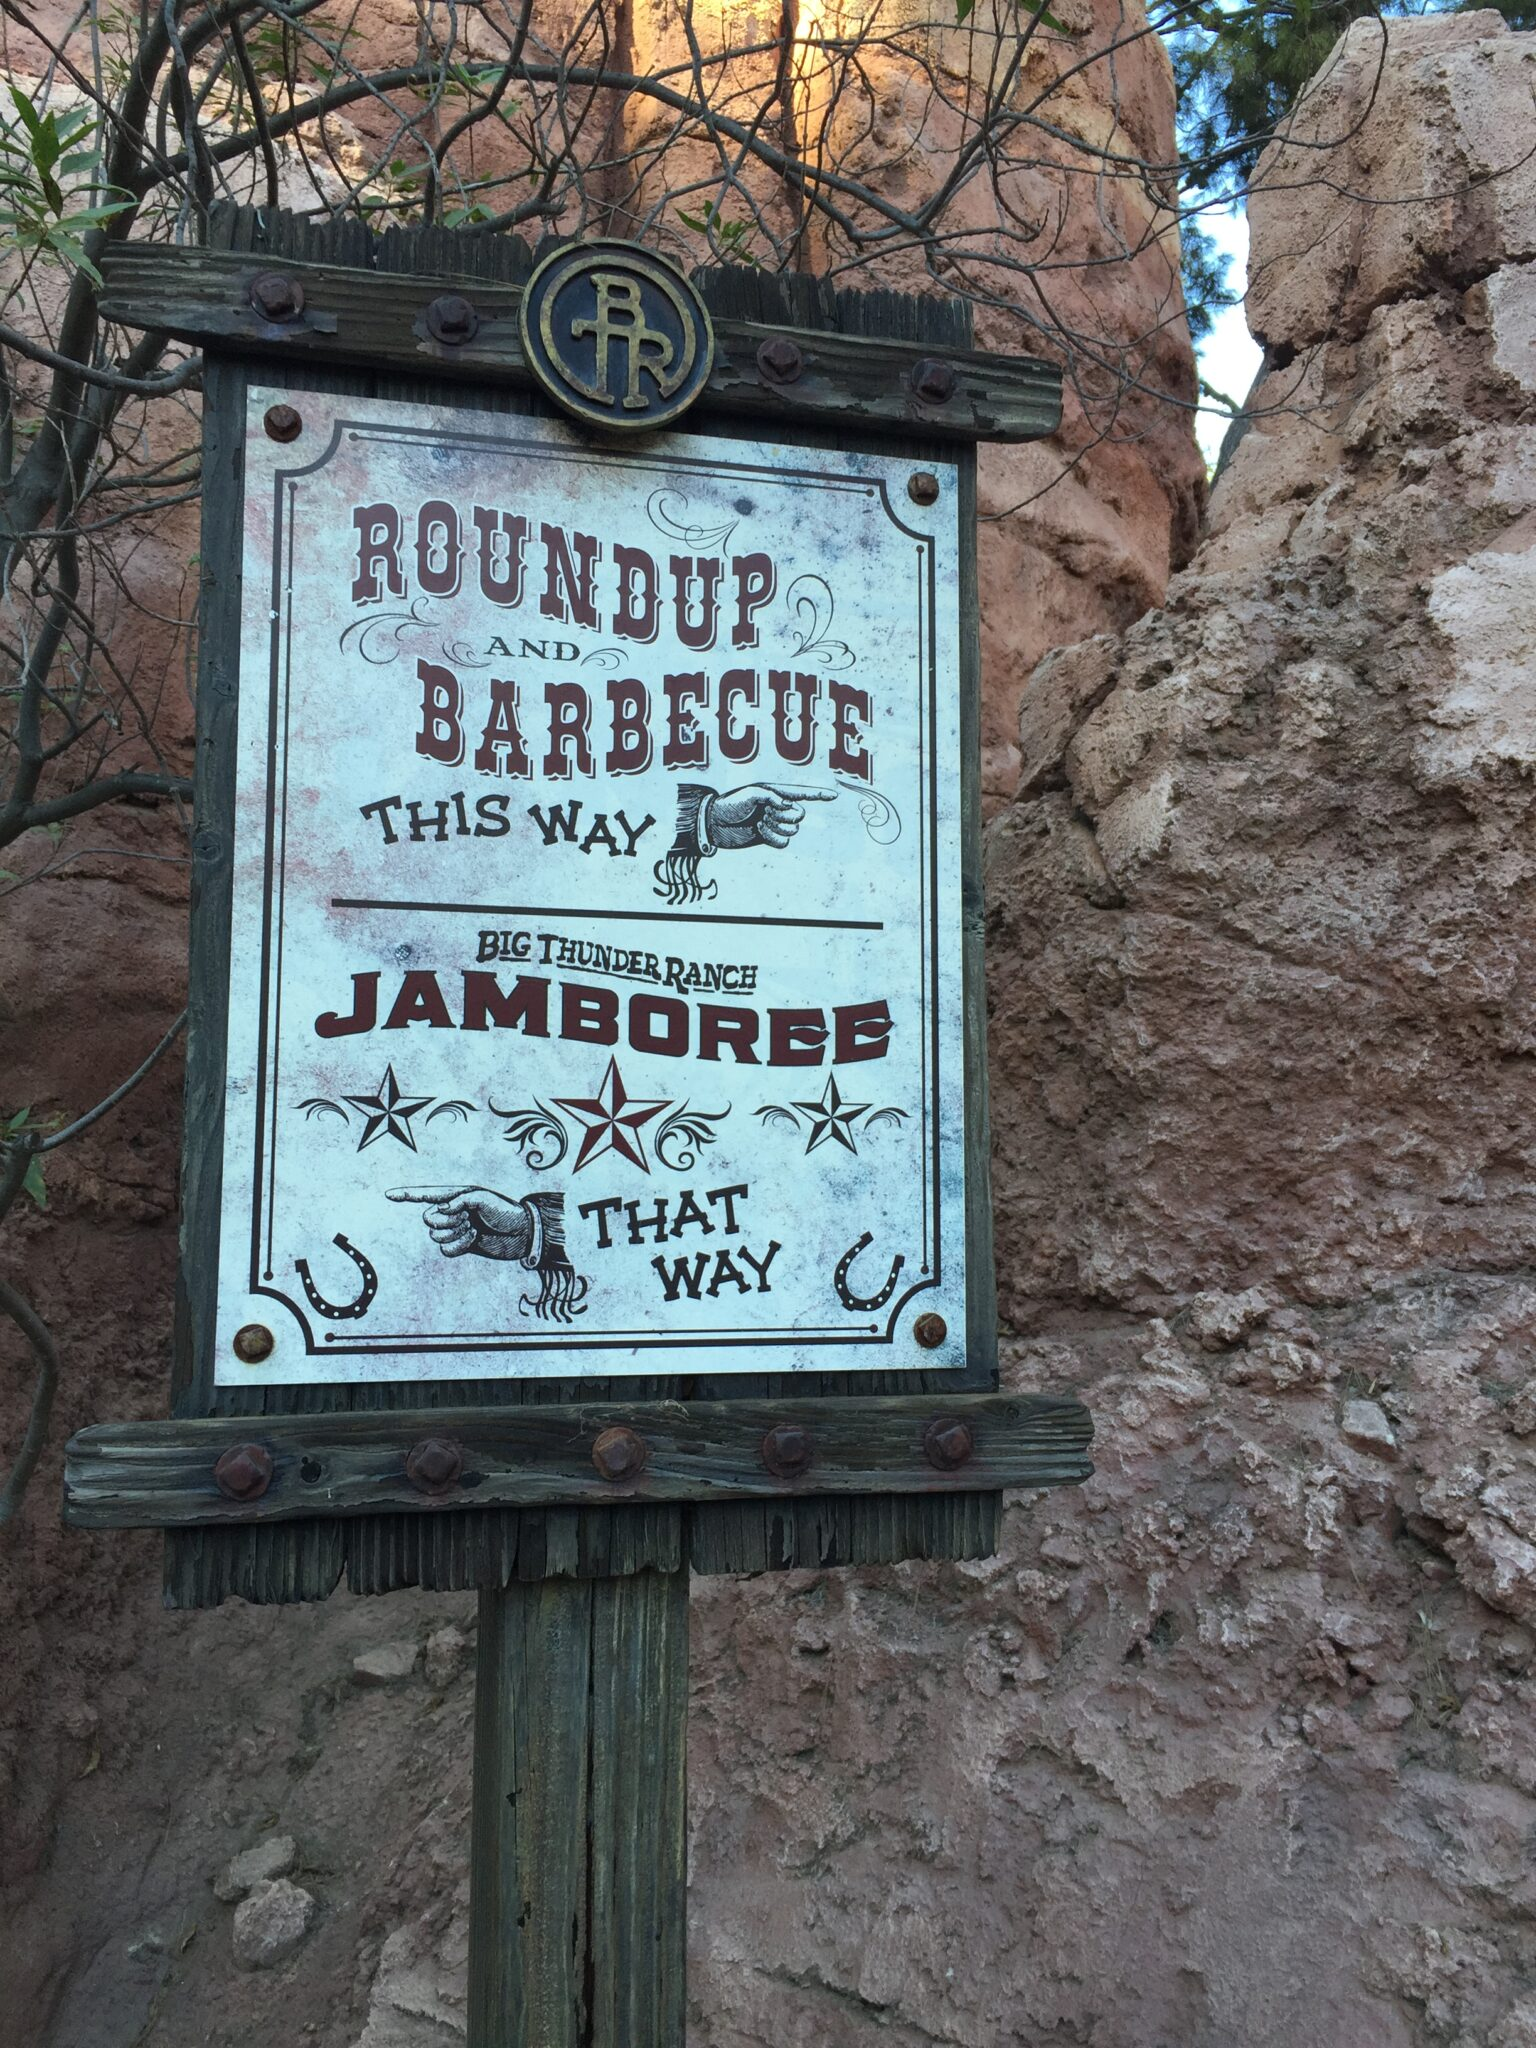 Remembering Big Thunder Ranch BBQ at Disneyland